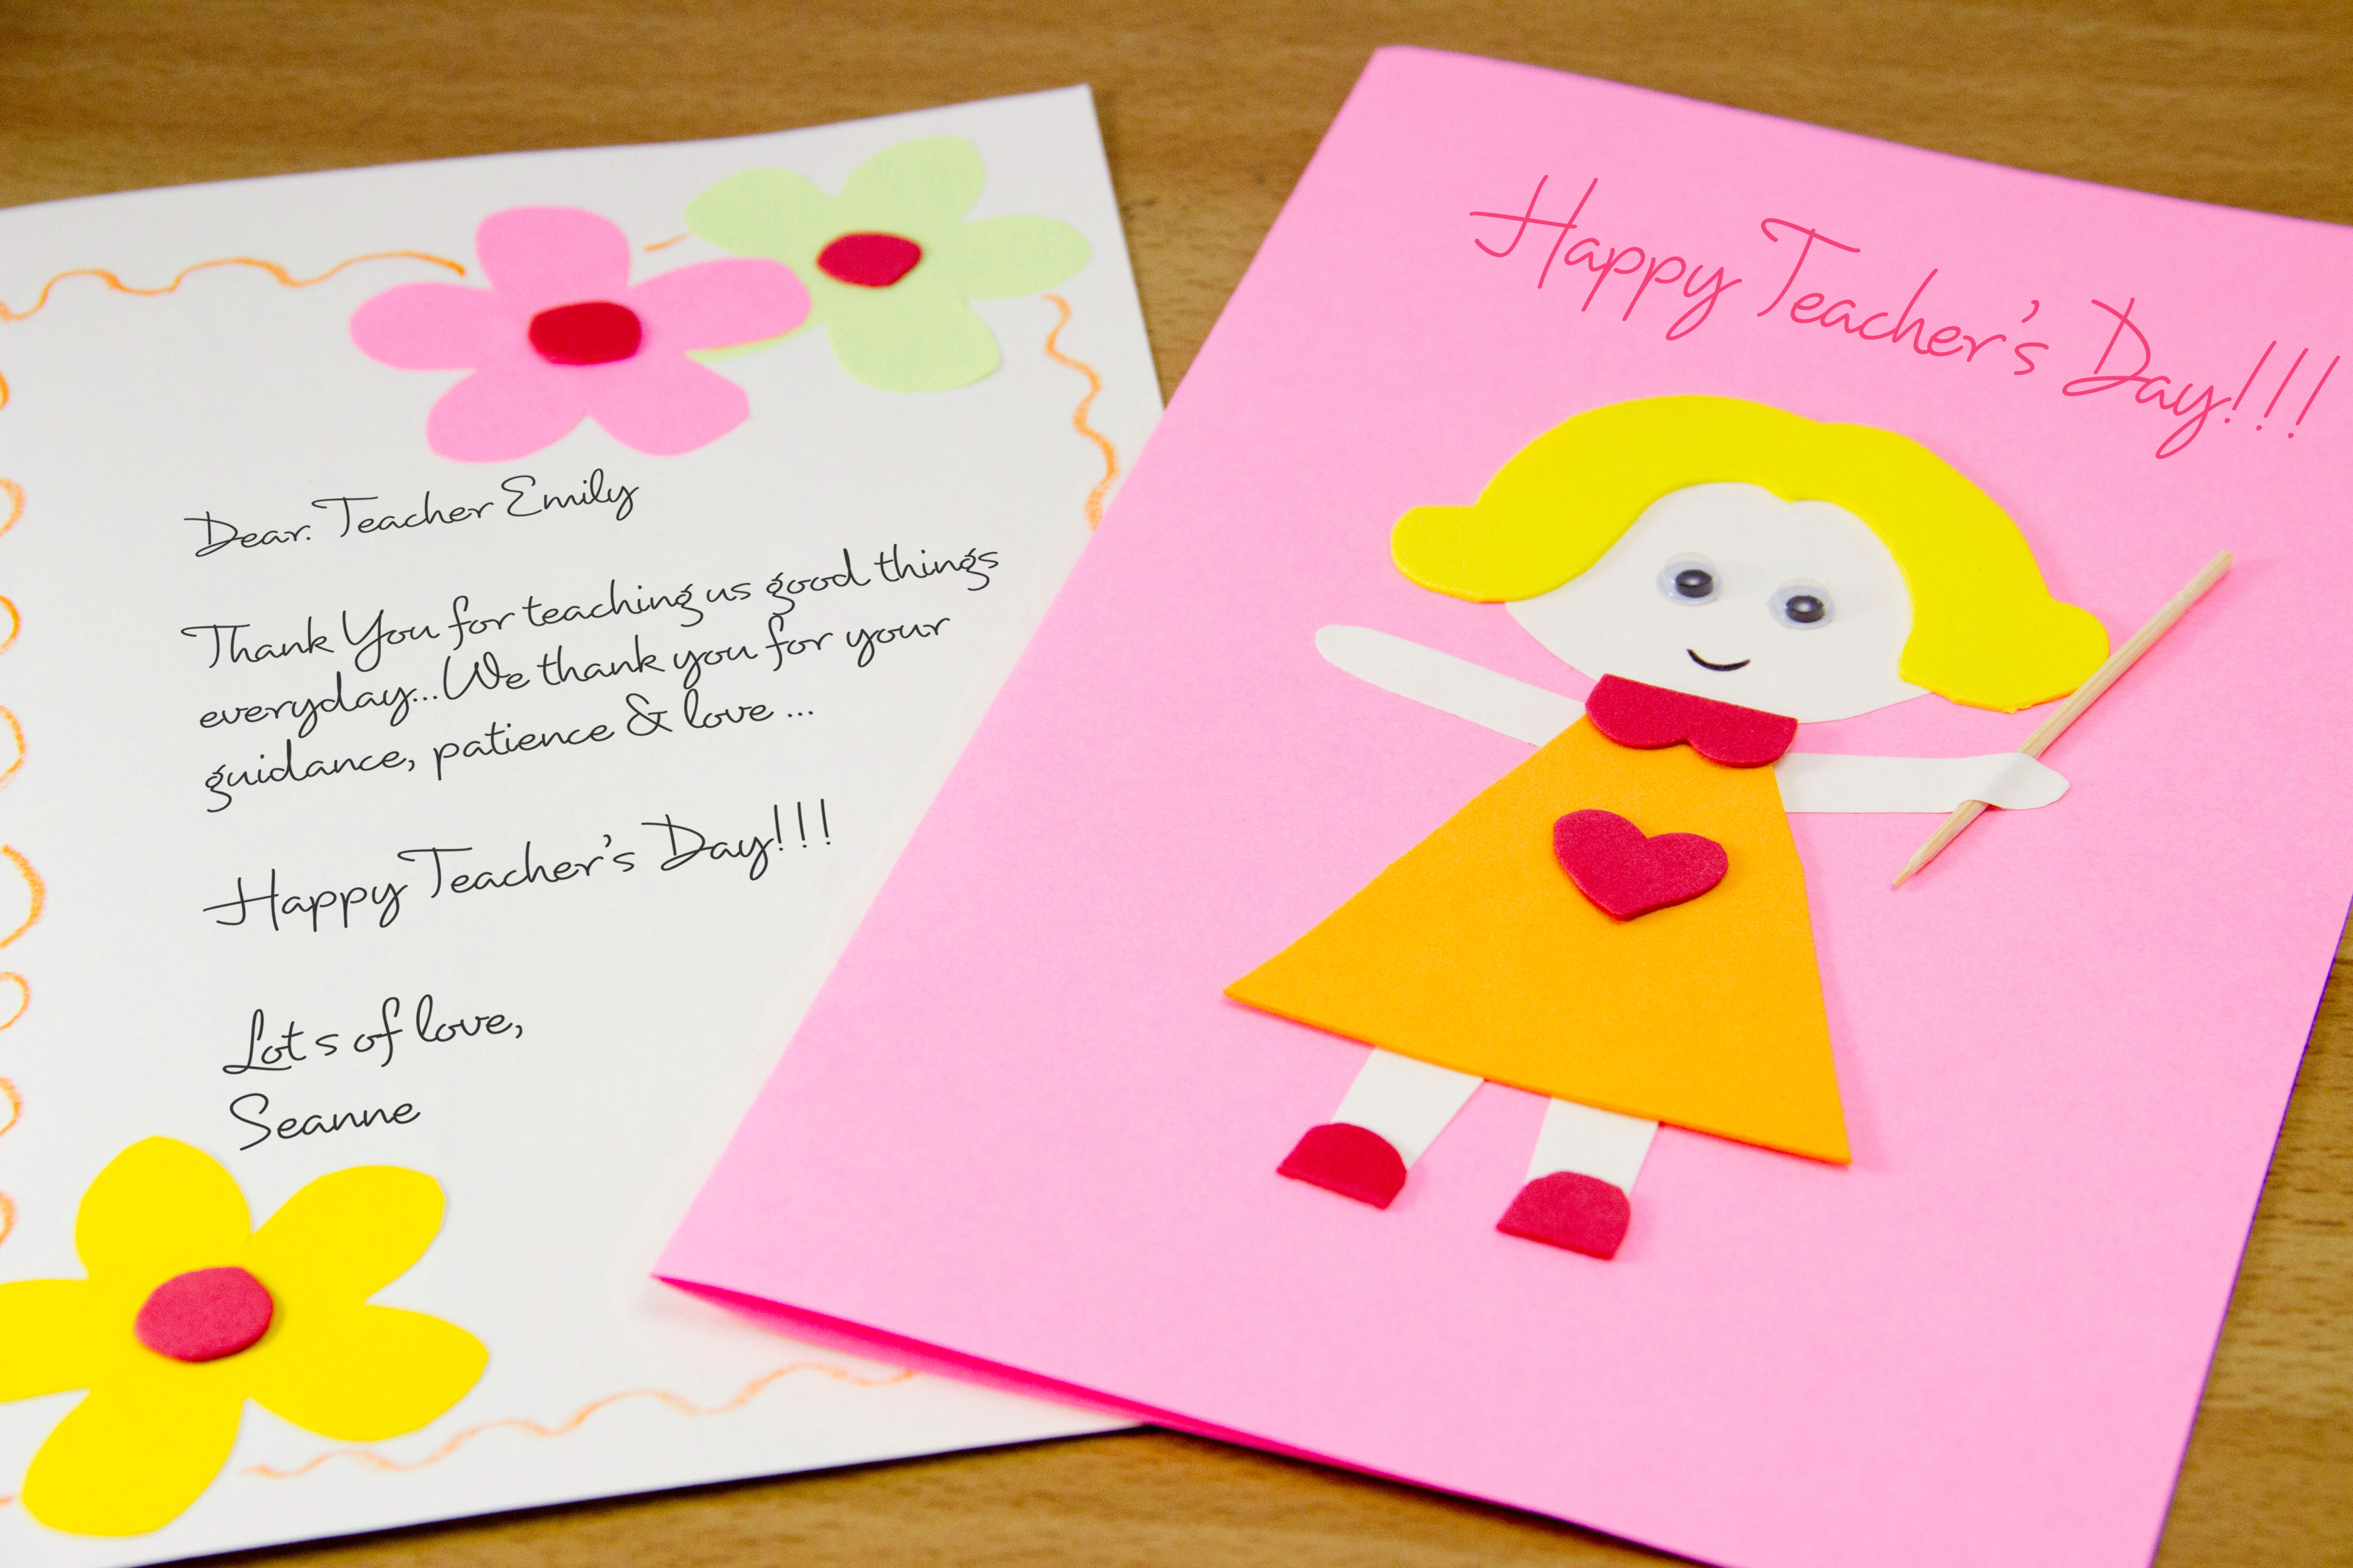 Easy Birthday Card Ideas For Kids How To Make A Homemade Teachers Day Card 7 Steps With Pictures